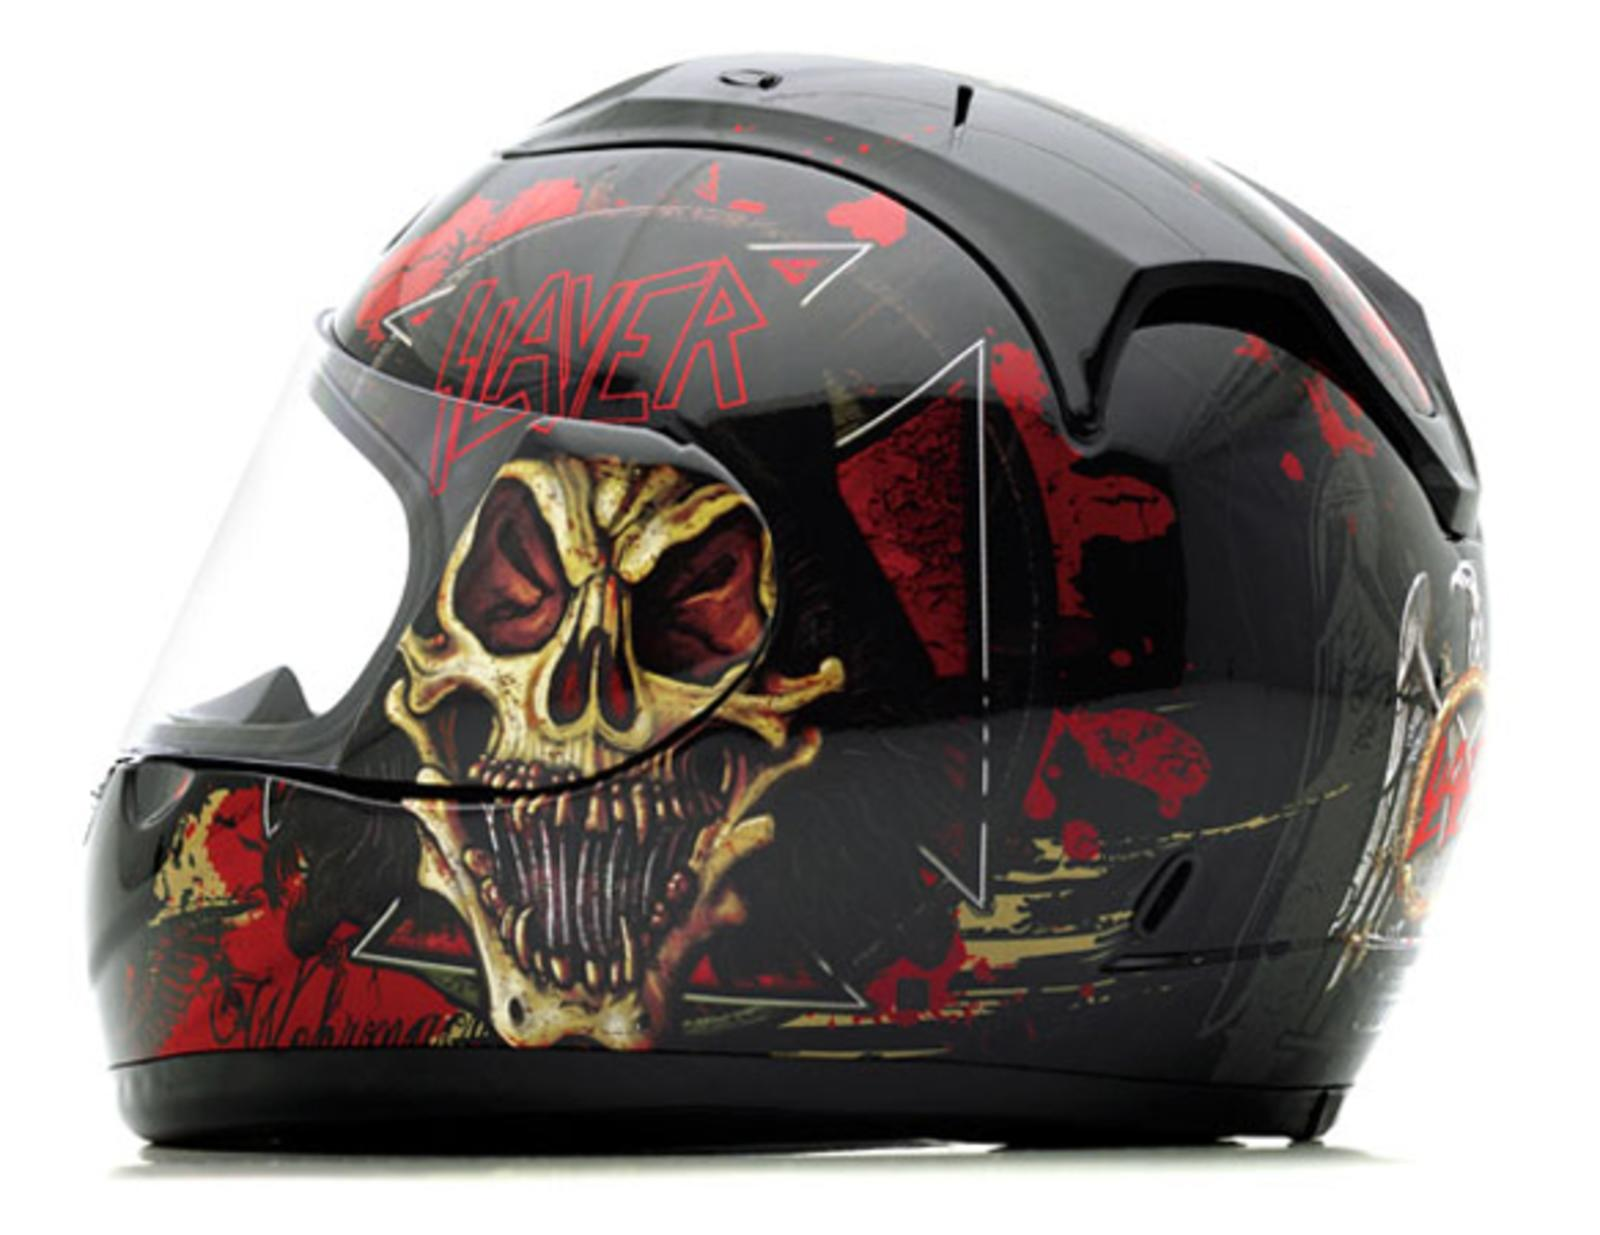 Slayer S Limited Edition Of Motorcycle Helmets Top Speed